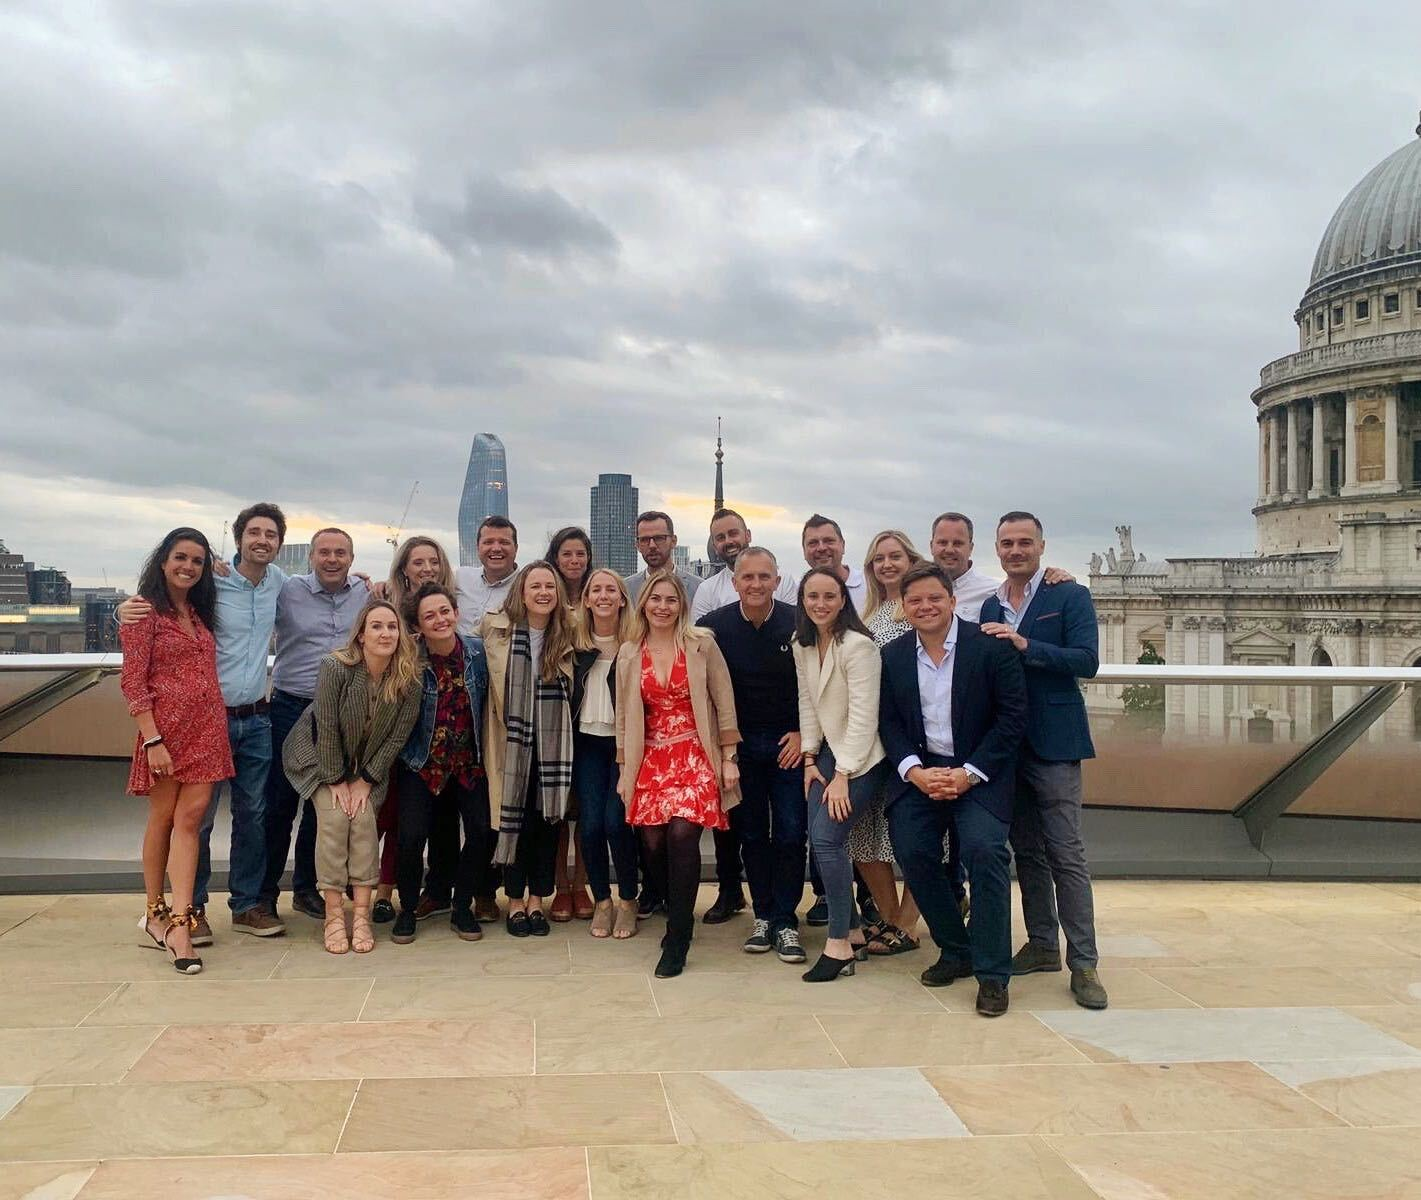 The London office summer party